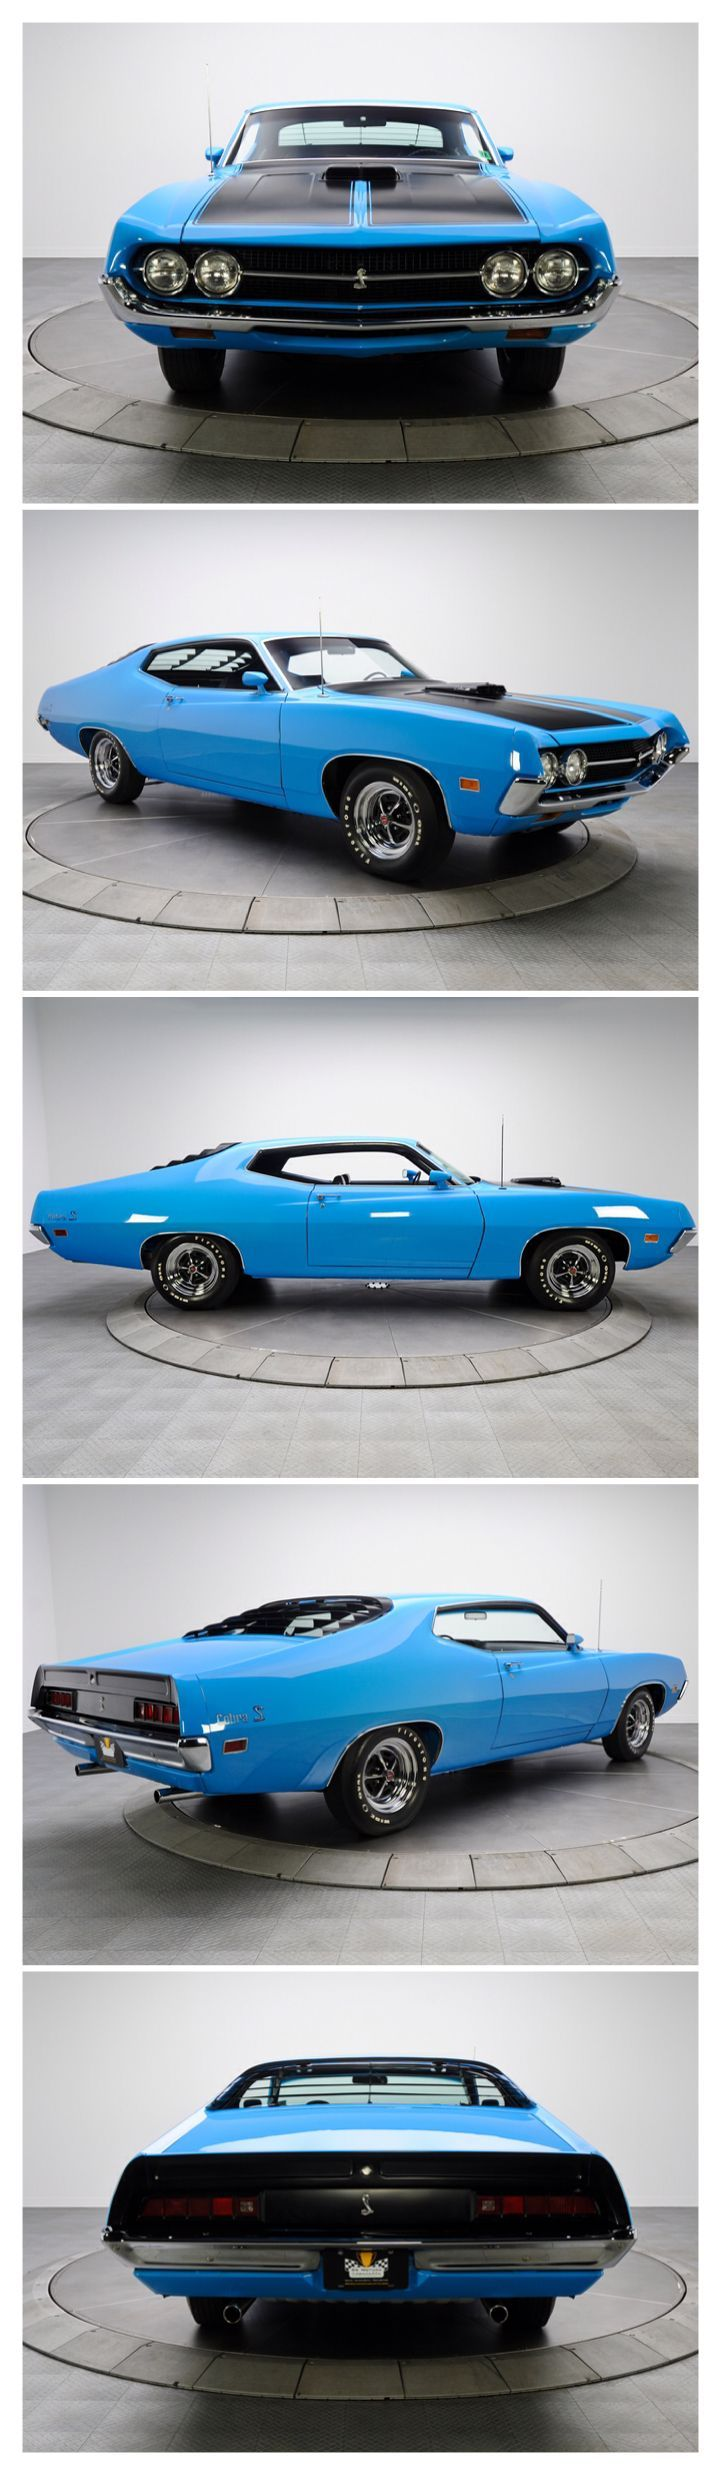 1971 ford torino cobra jet 429 i bought one of these new and named it brutus my wife said it idled rough and shook too much